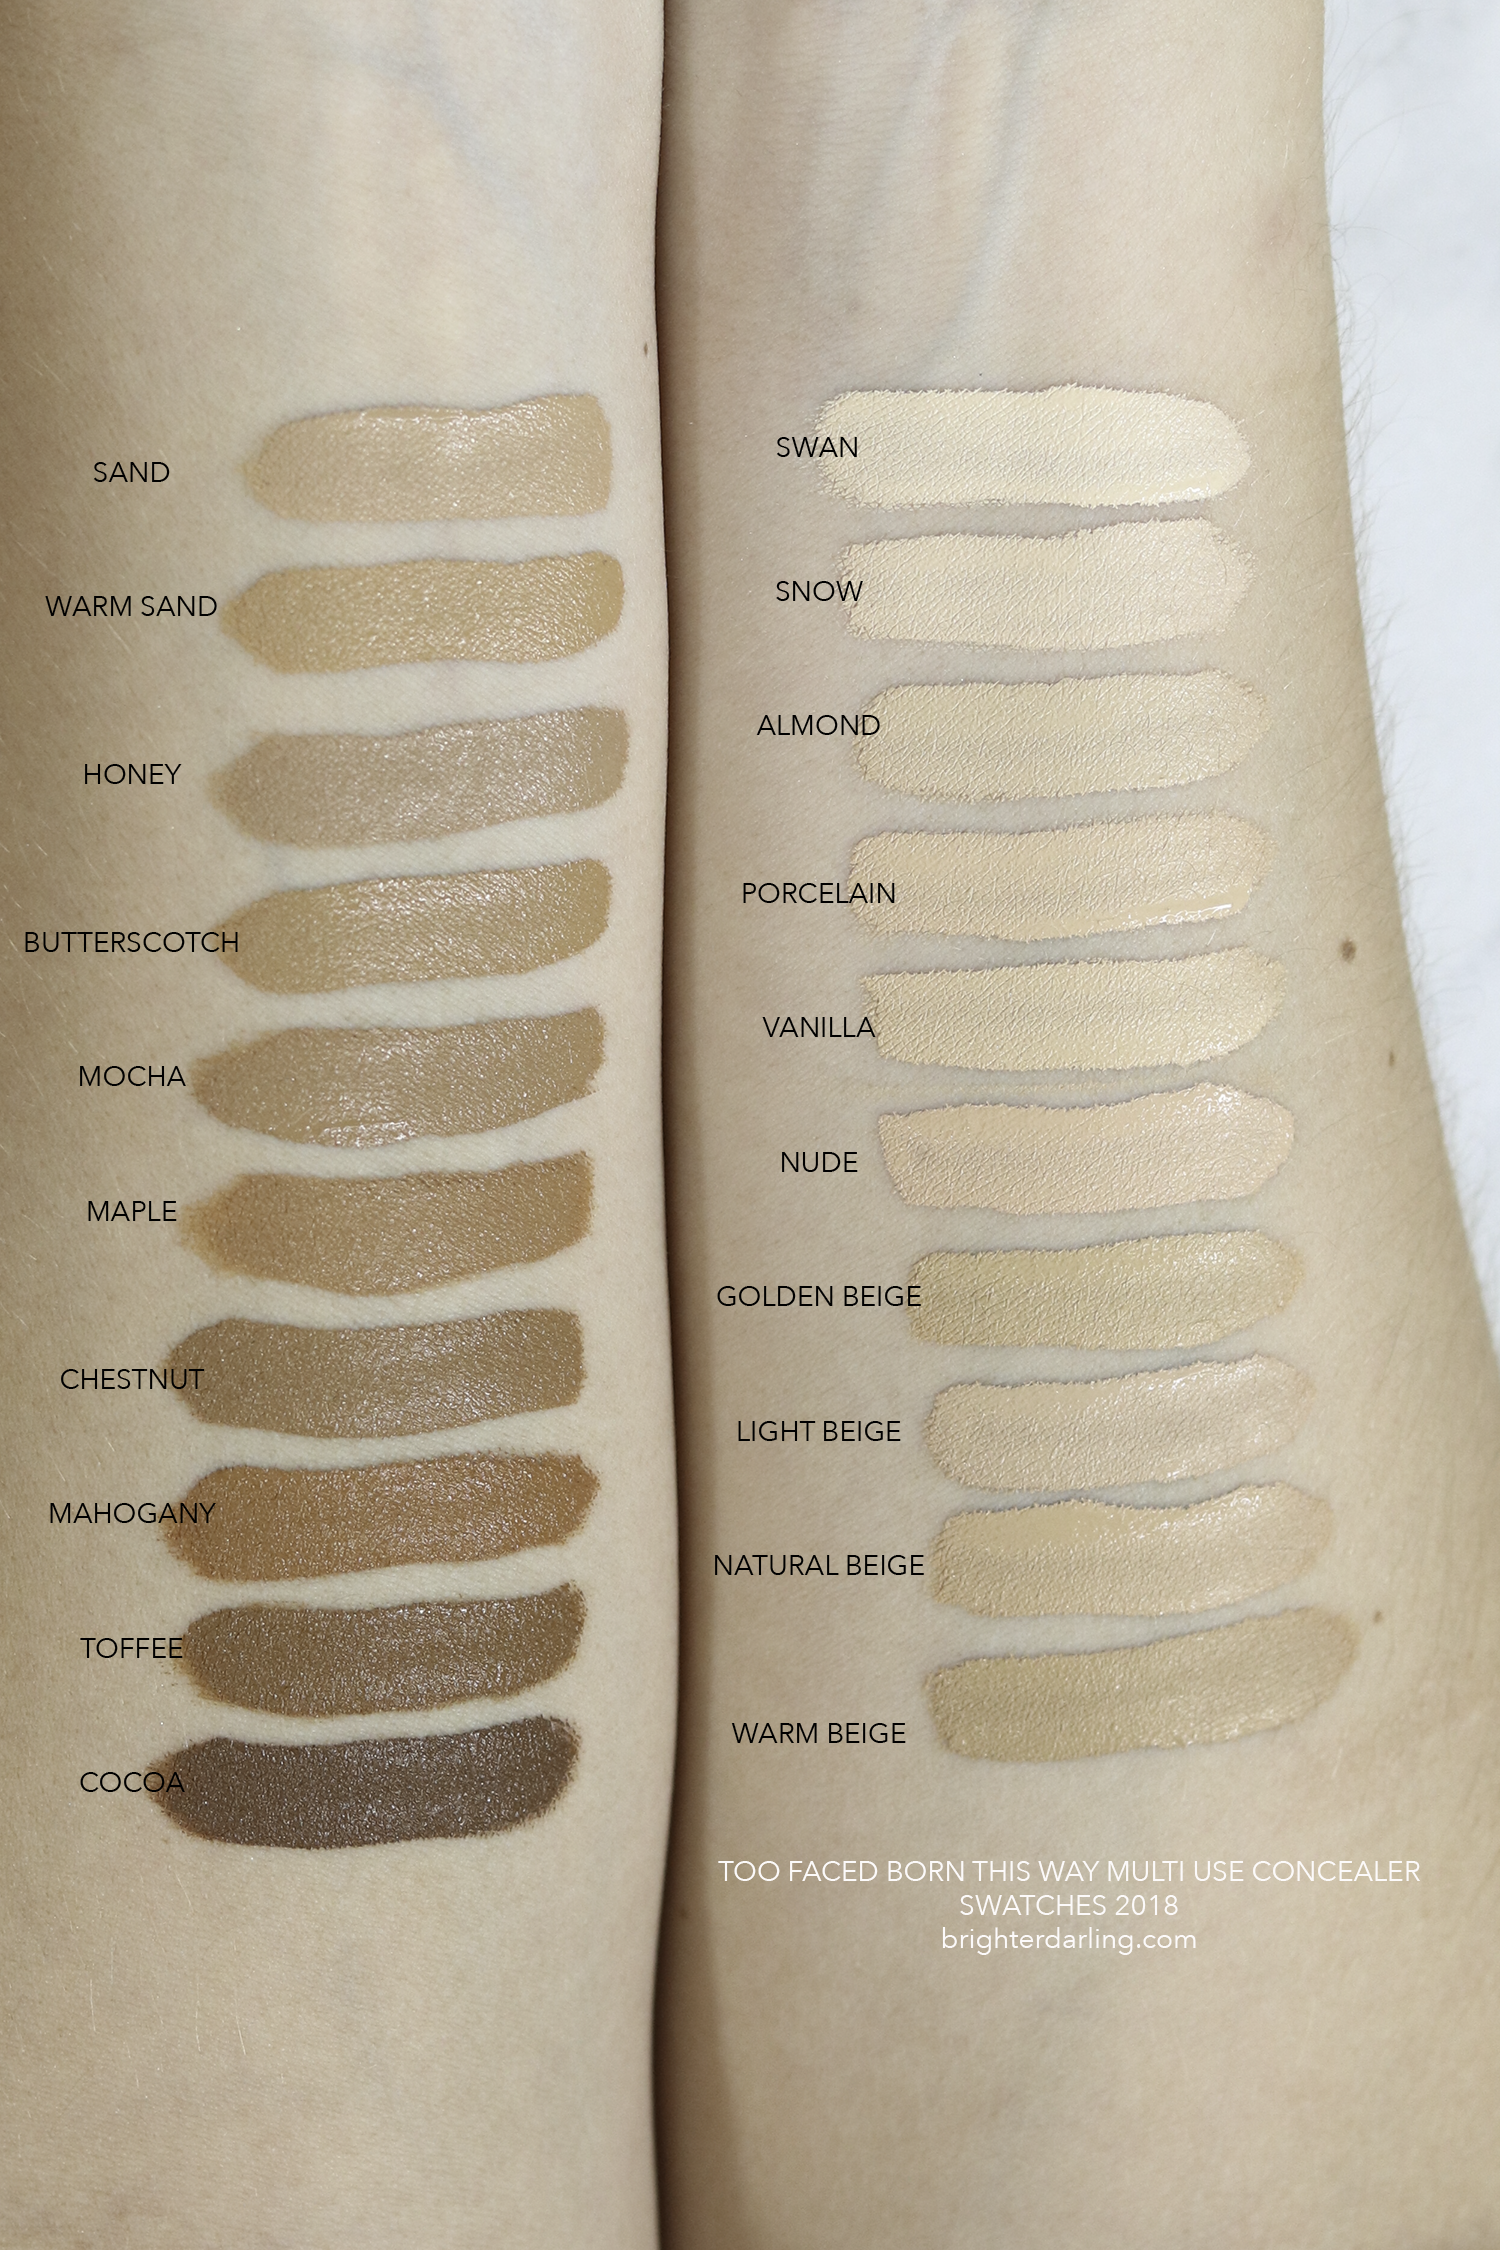 Too Faced Born This Way Multi Use Sculpting Concealer Swatches Brighter Darling